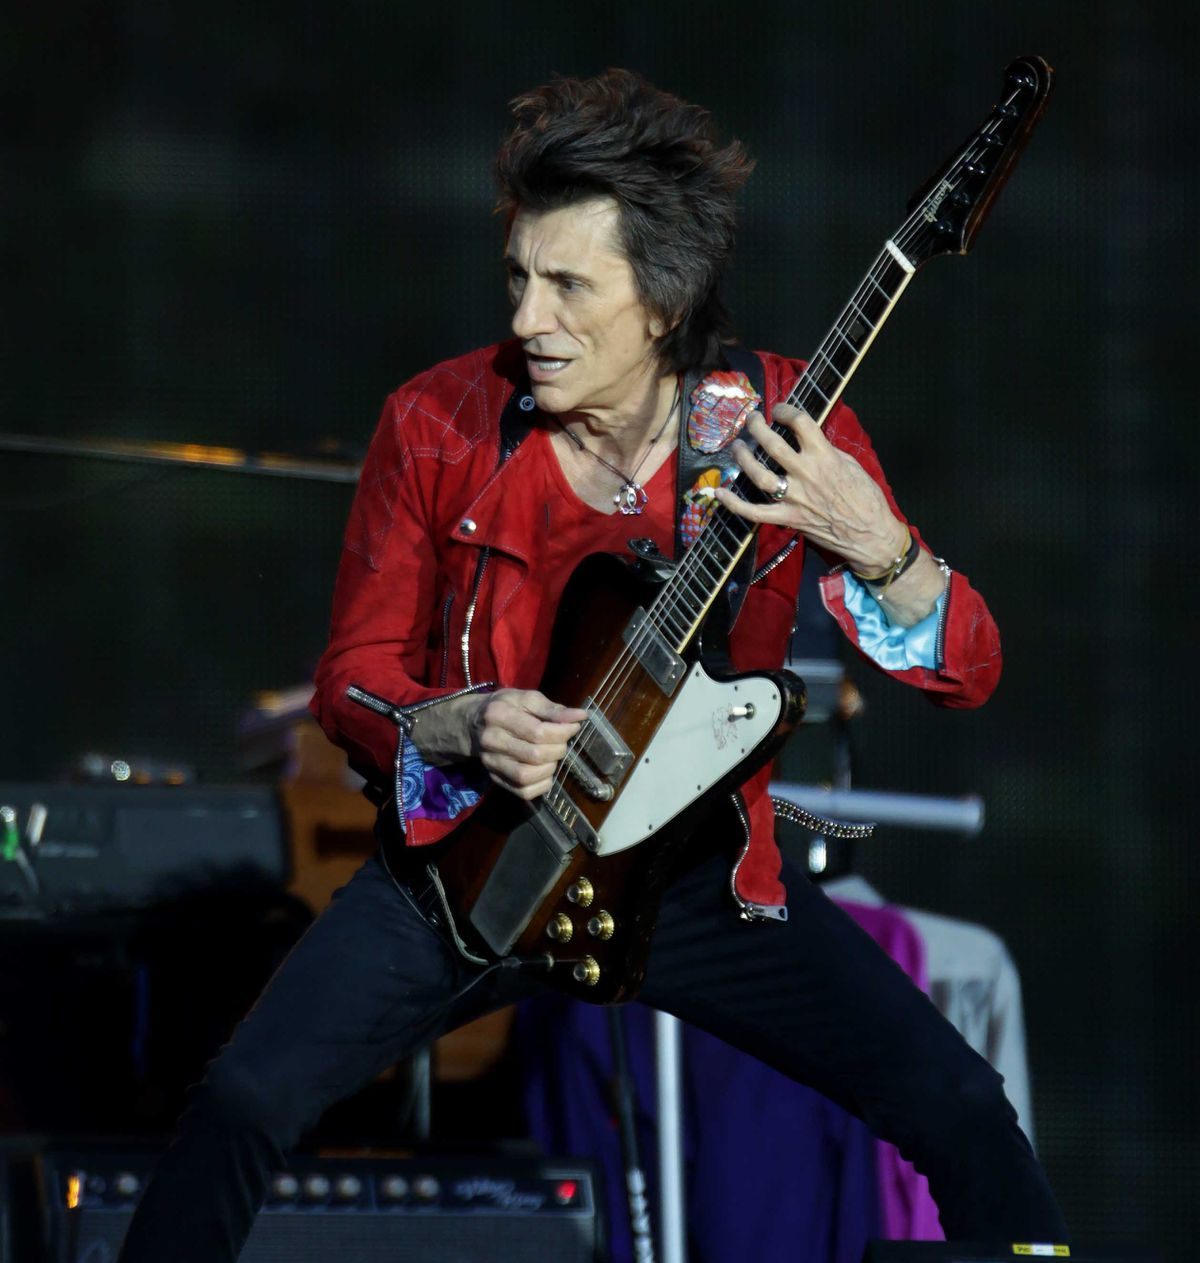 The Rolling Stones at the Ricoh Arena. Photos: Andy Shaw